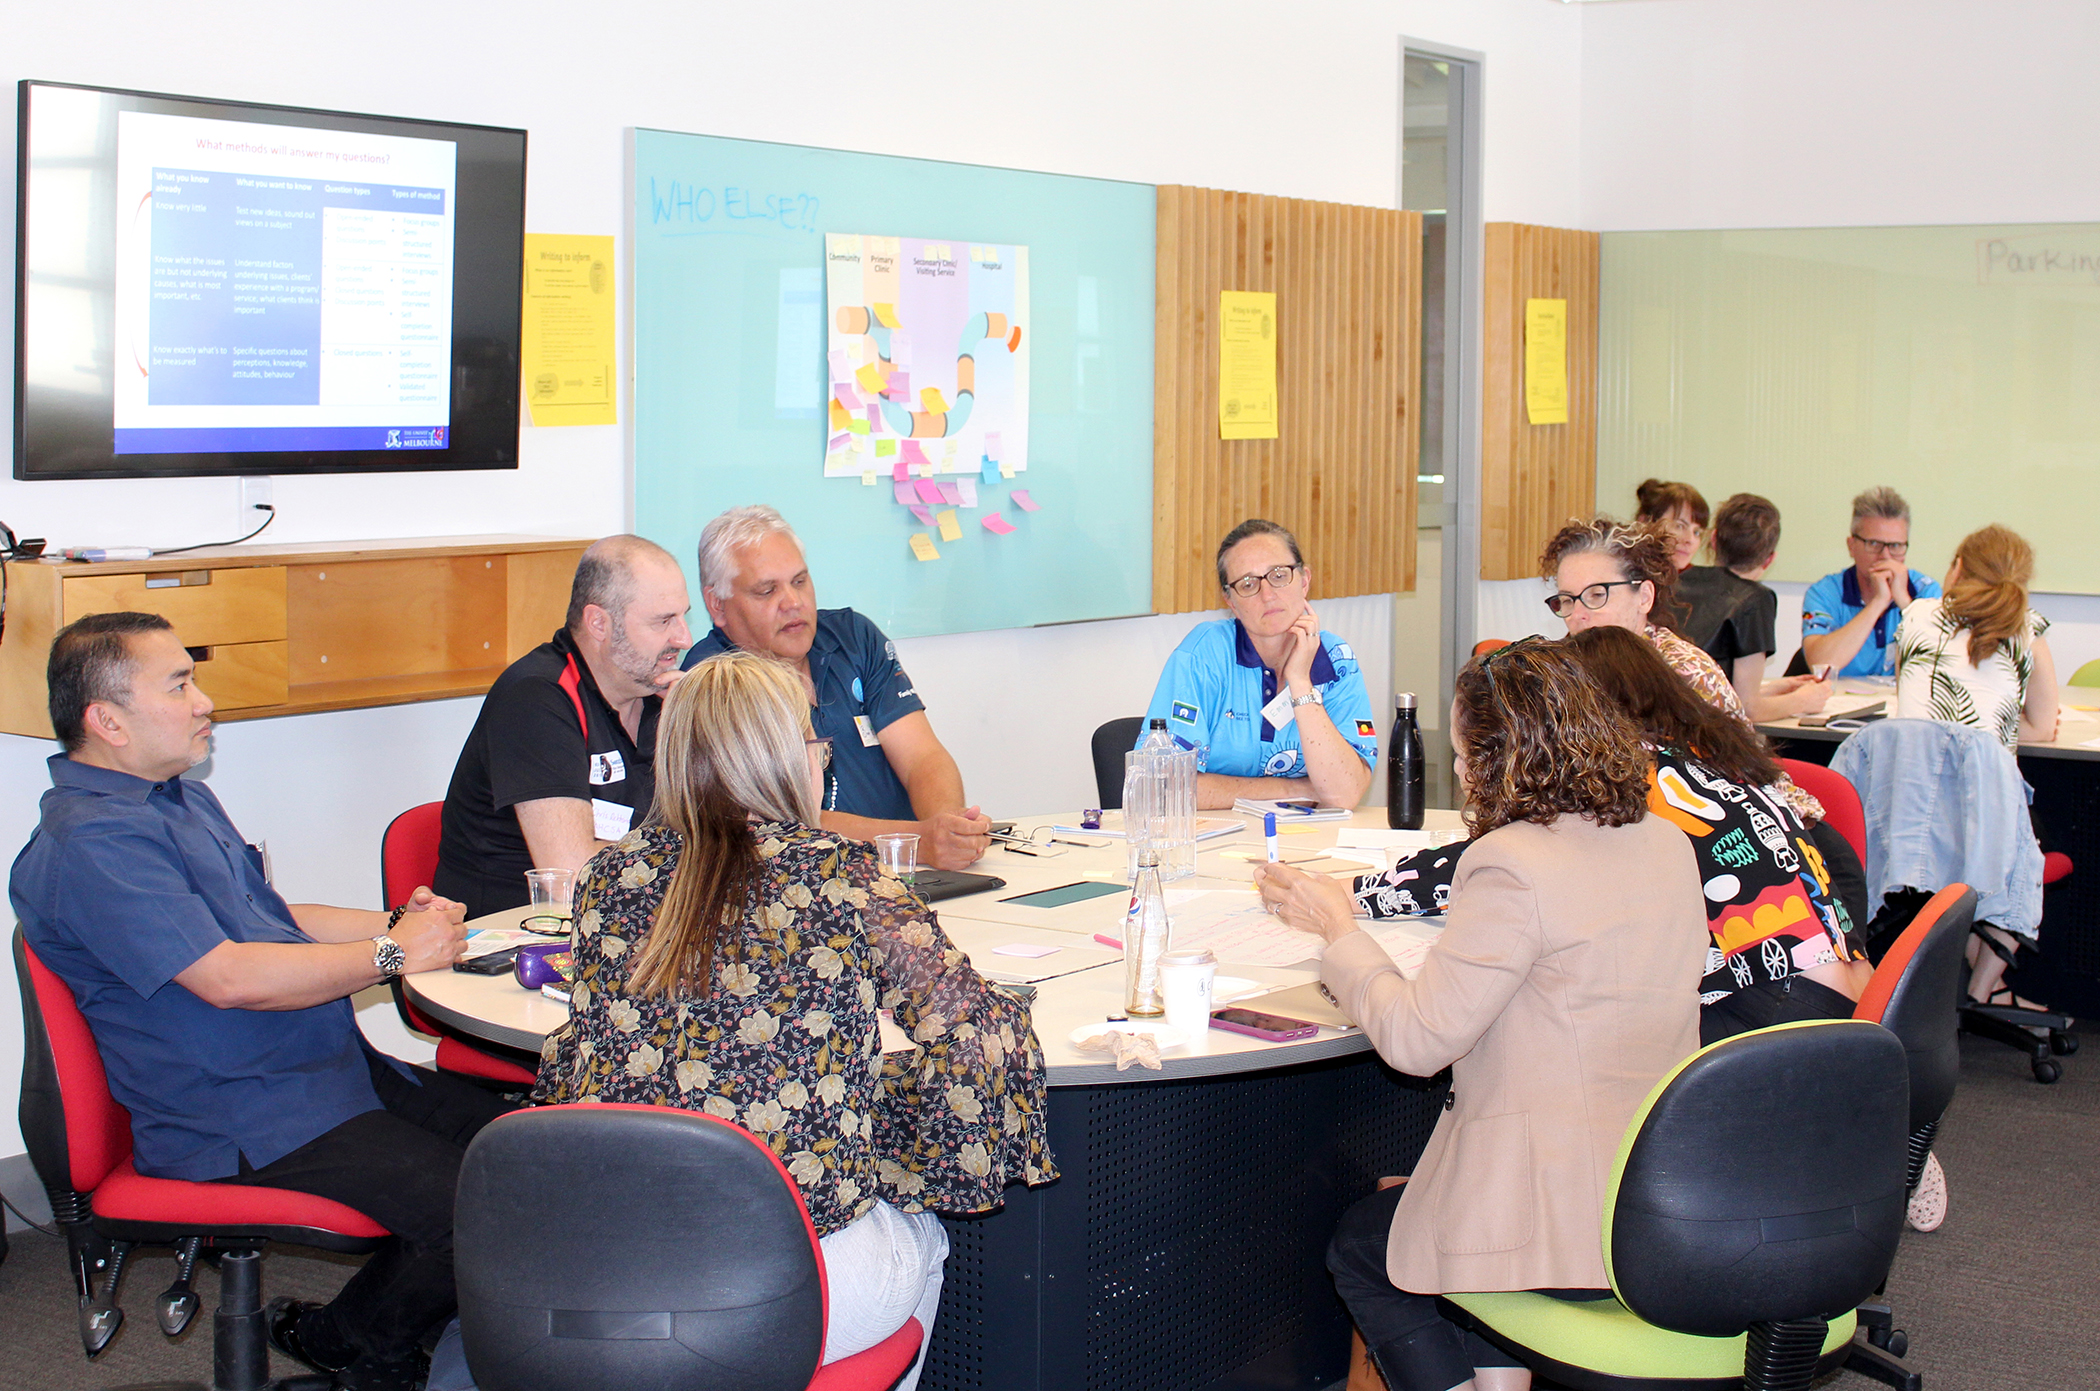 participants in discussion around a table